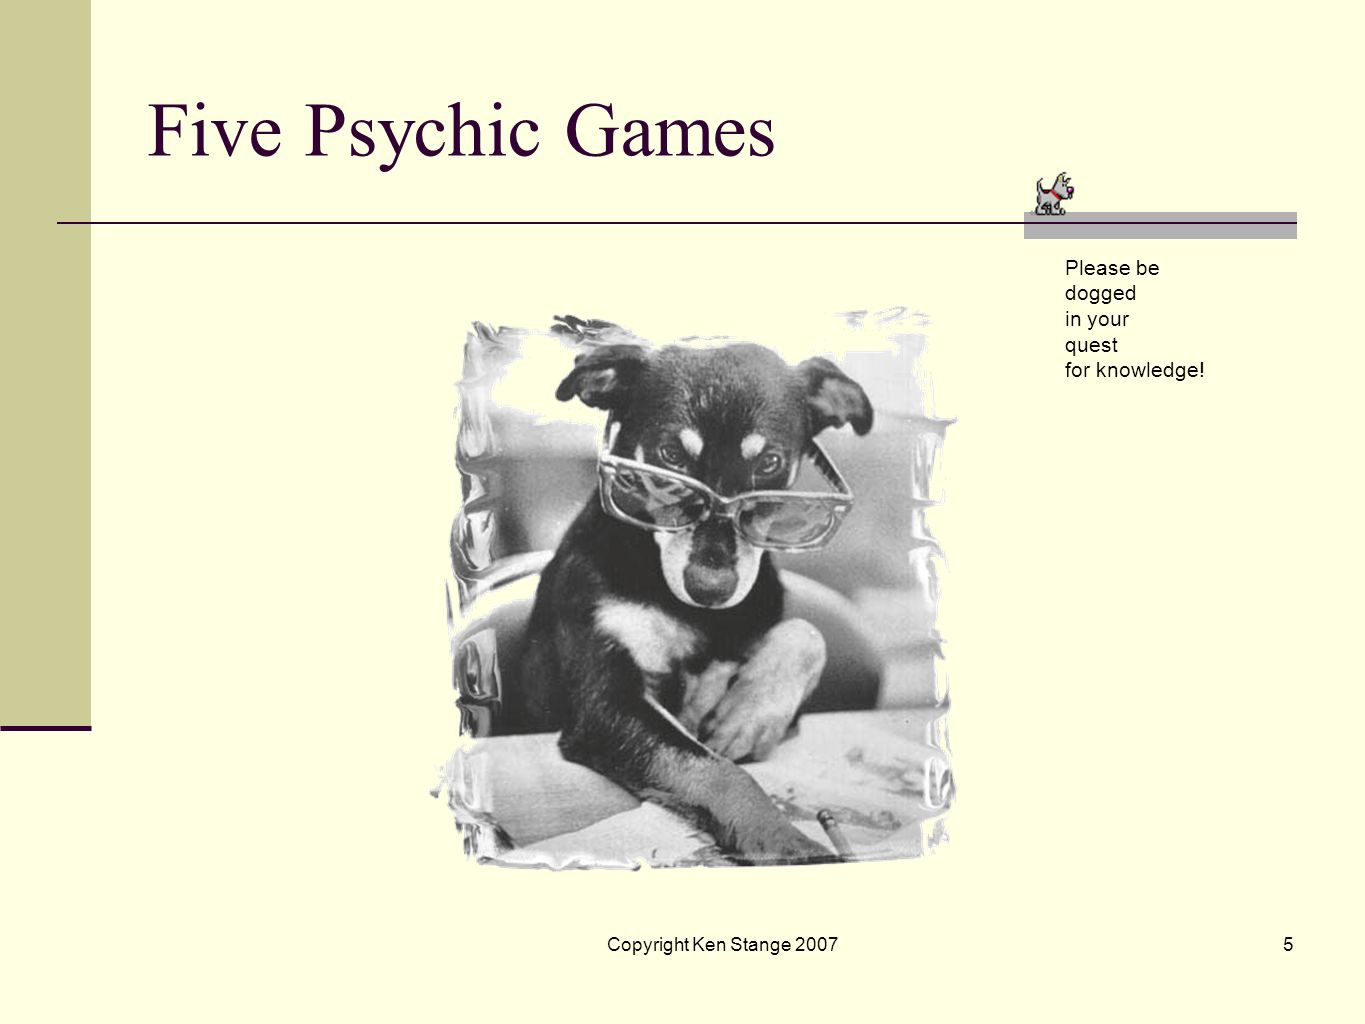 Five Psychic Games Please be dogged in your quest for knowledge!